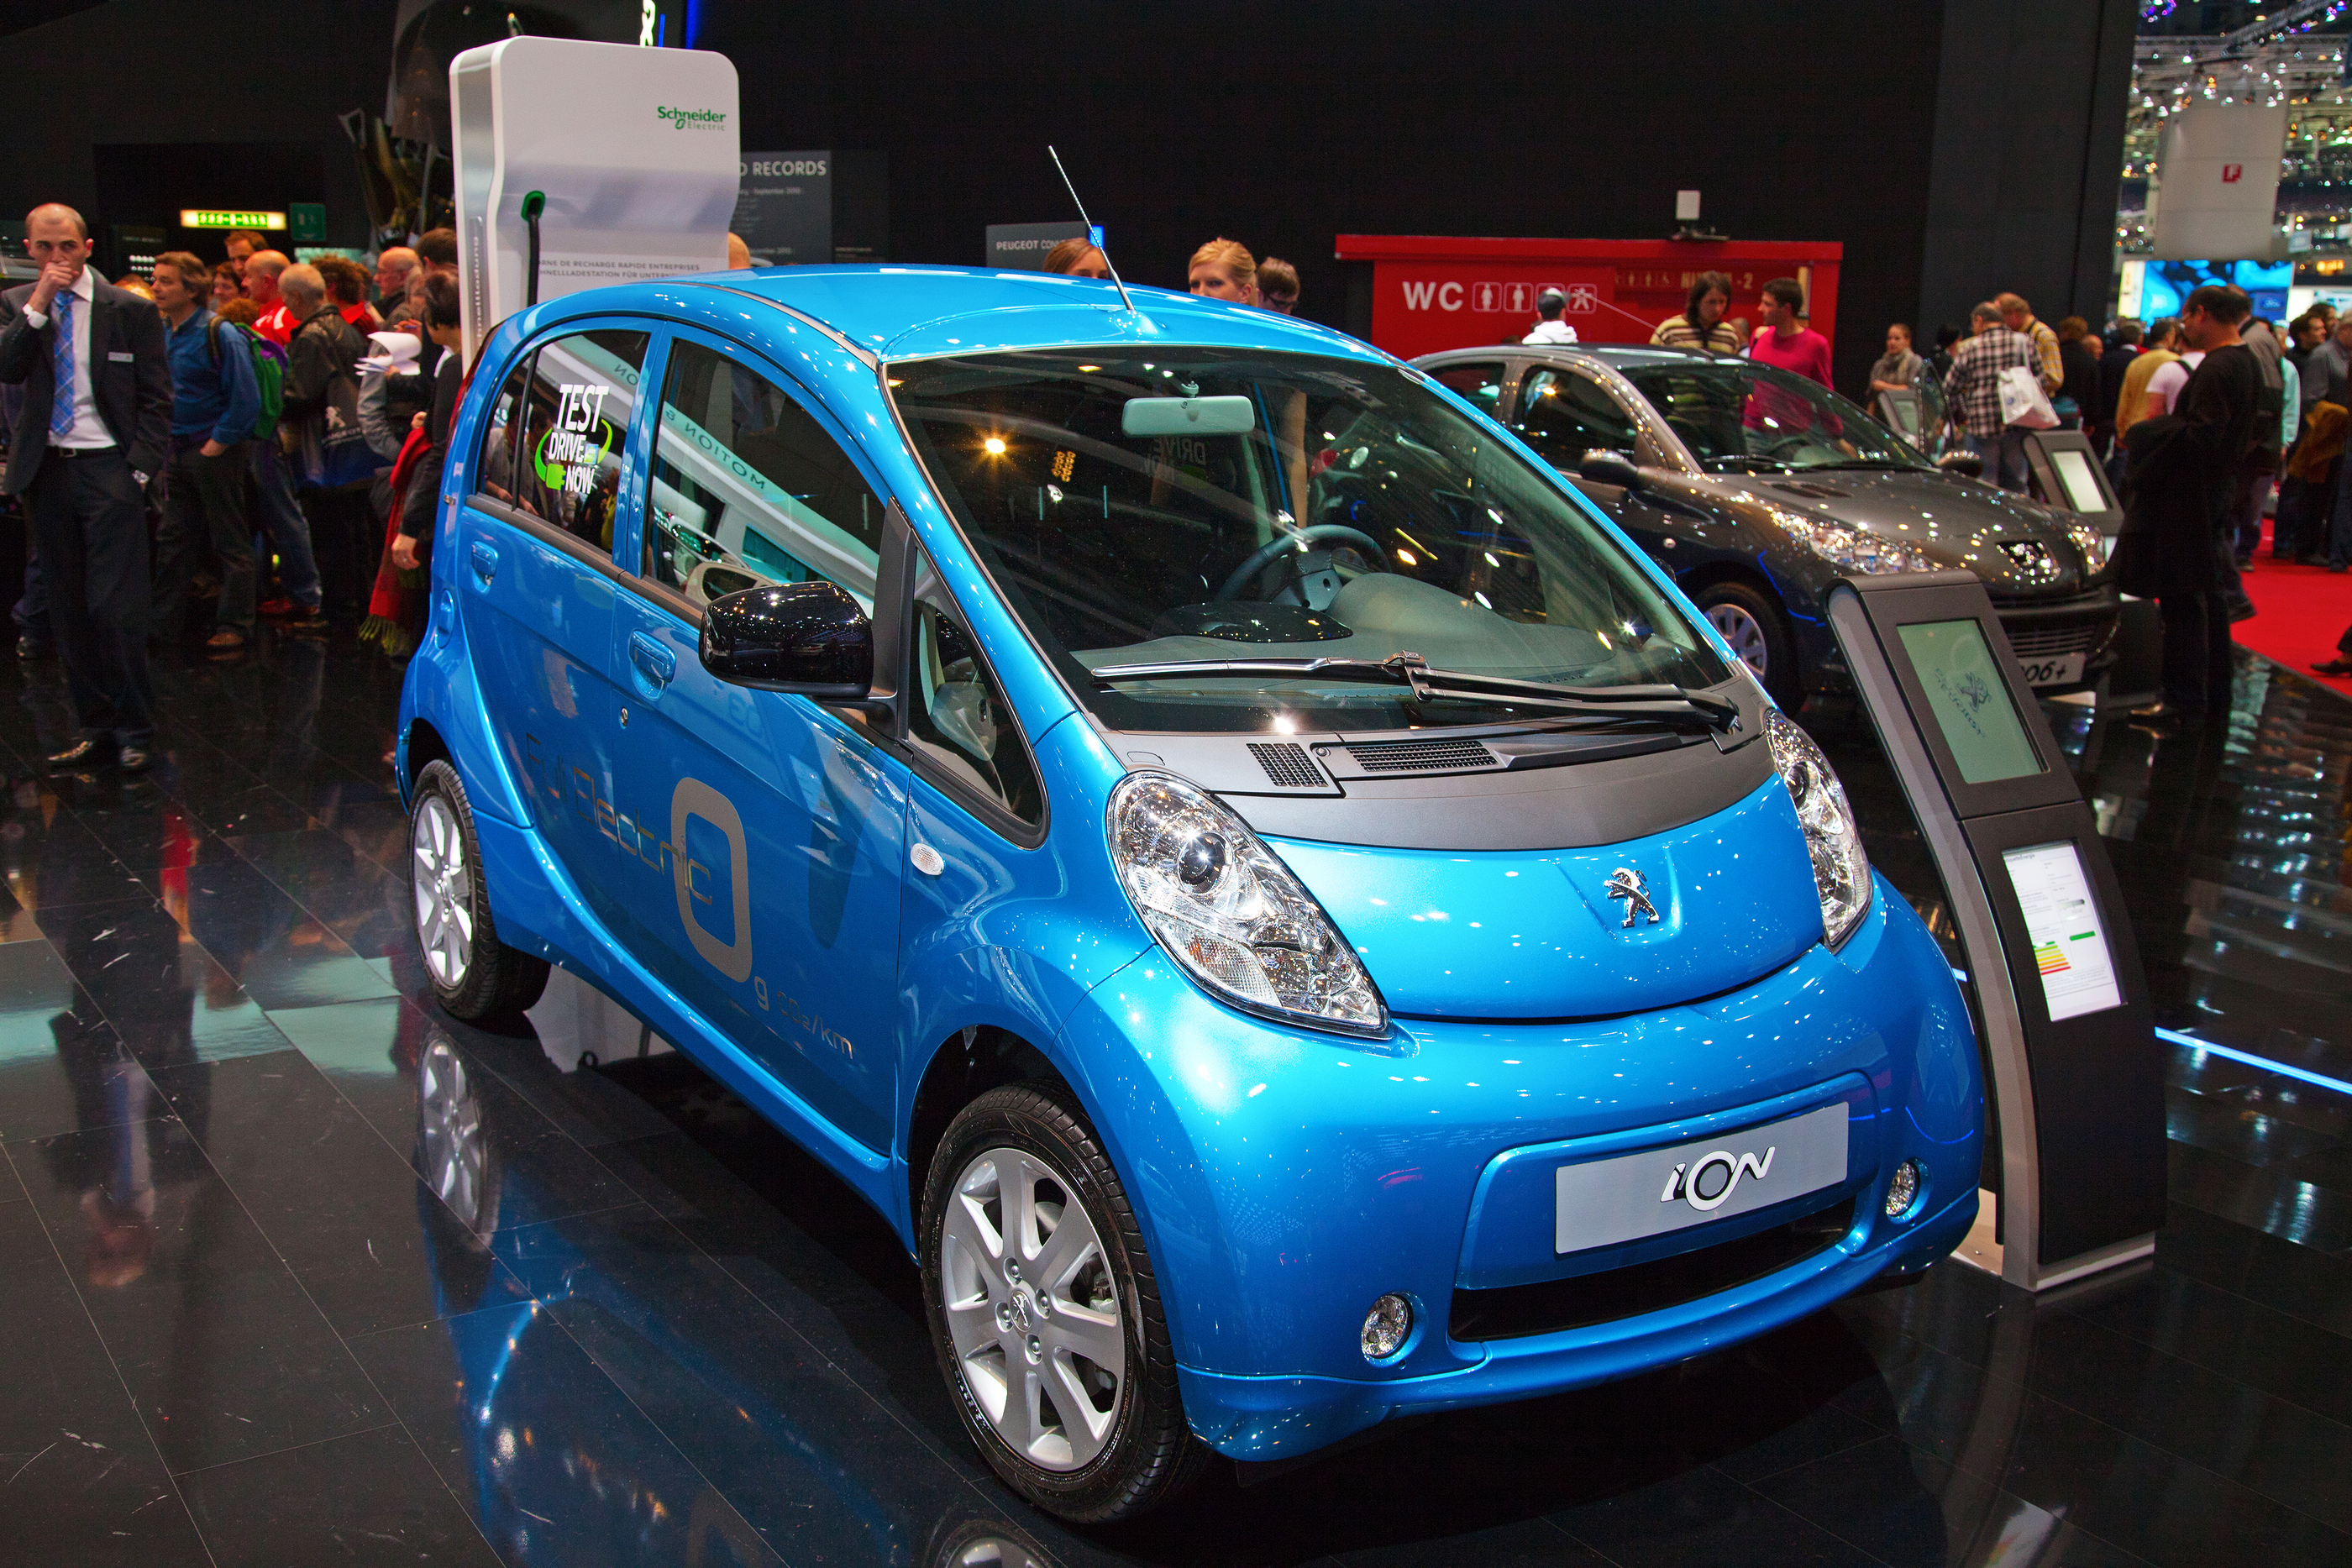 GENEVA - MARCH 8: THE FULLY ELECTRIC PEUGEOT ION WITH ZERO EMISSION ON THE 81ST INTERNATIONAL MOTOR SHOW PALEXPO-GENEVA ON MARCH 8; 2011  IN GENEVA, SWITZERLAND. BY SWISSHIPPO